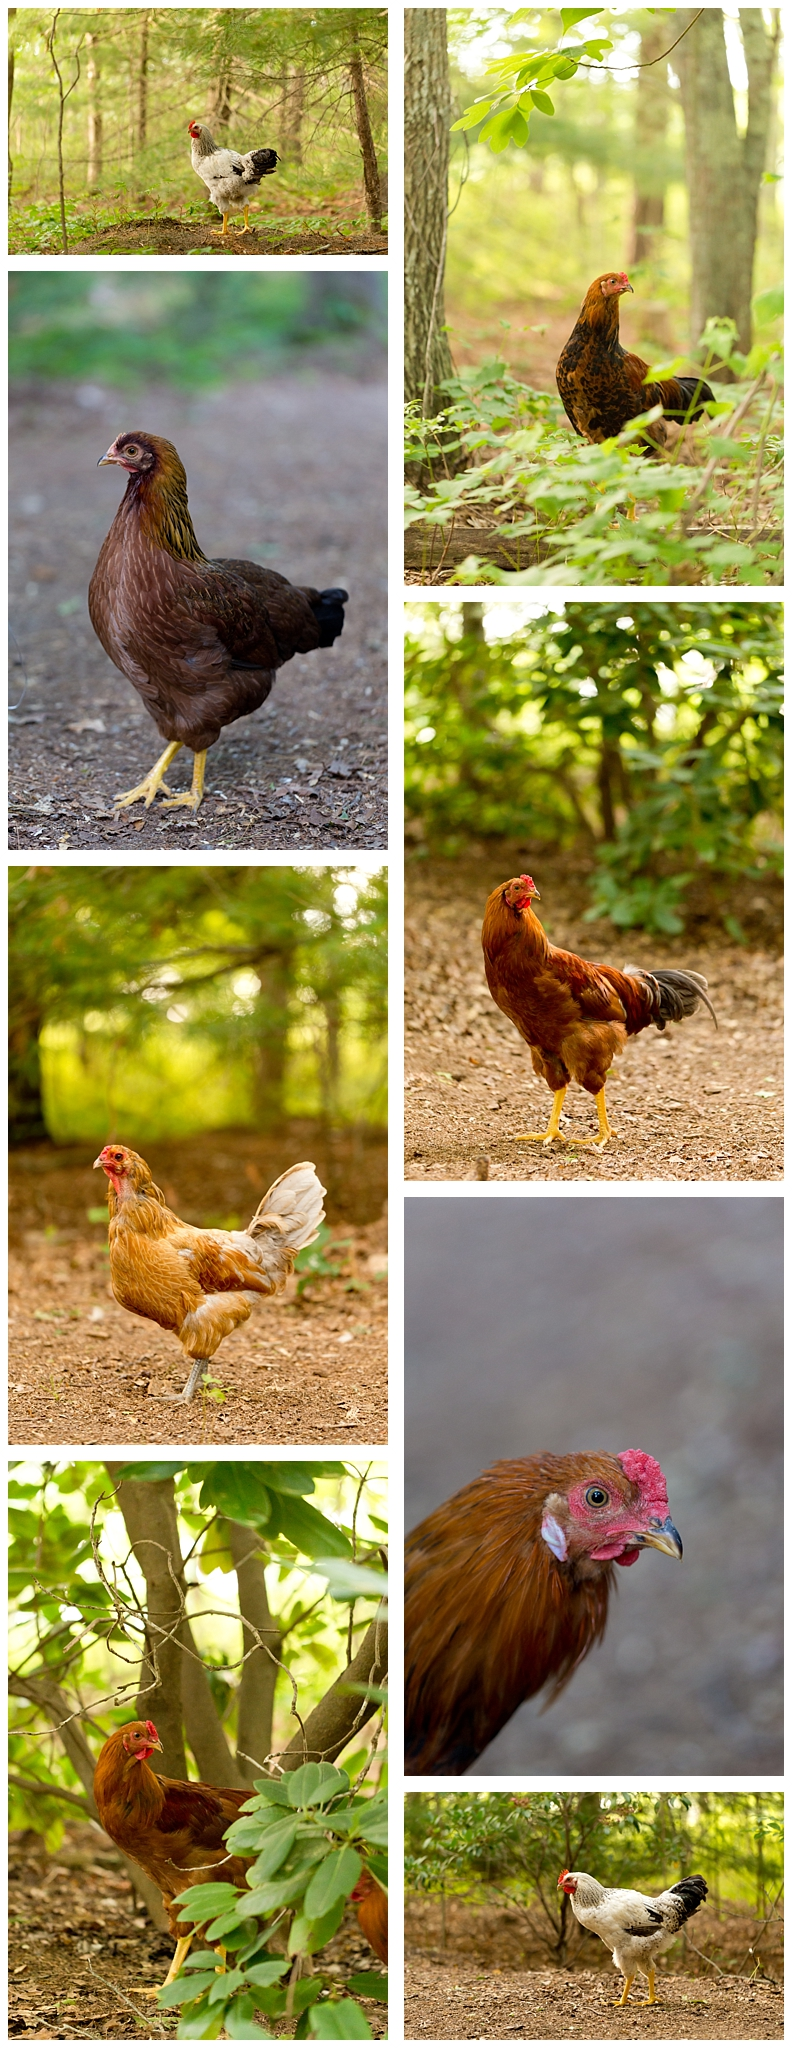 chickens in the woods